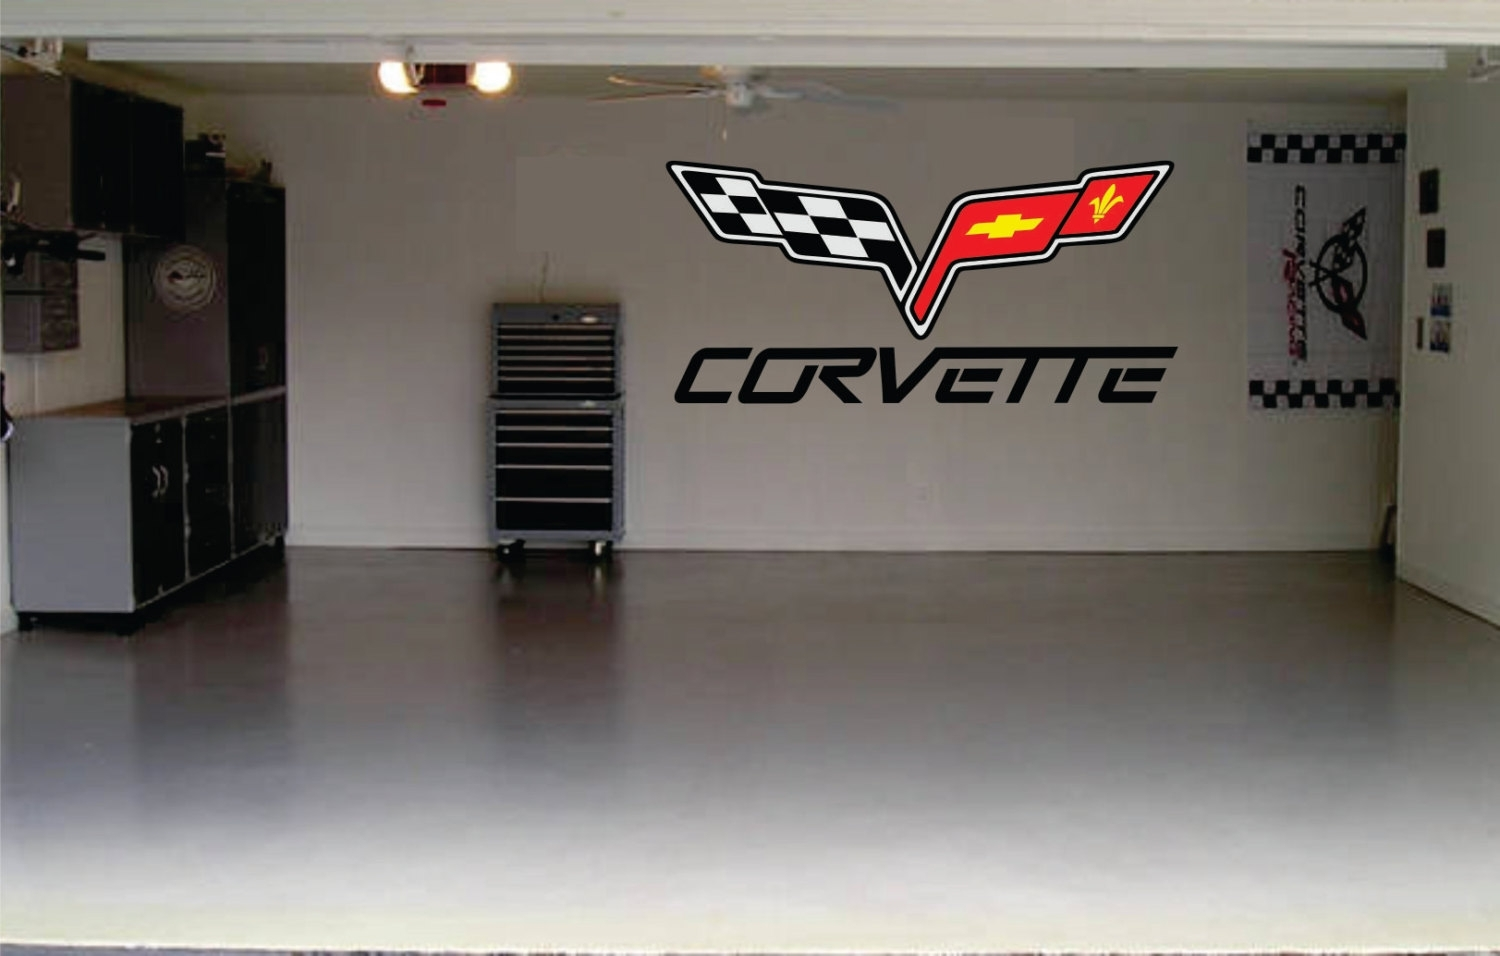 Garage Wall Decorations – Home Decorating Ideas In Best And Newest Garage Wall Accents (Gallery 10 of 15)